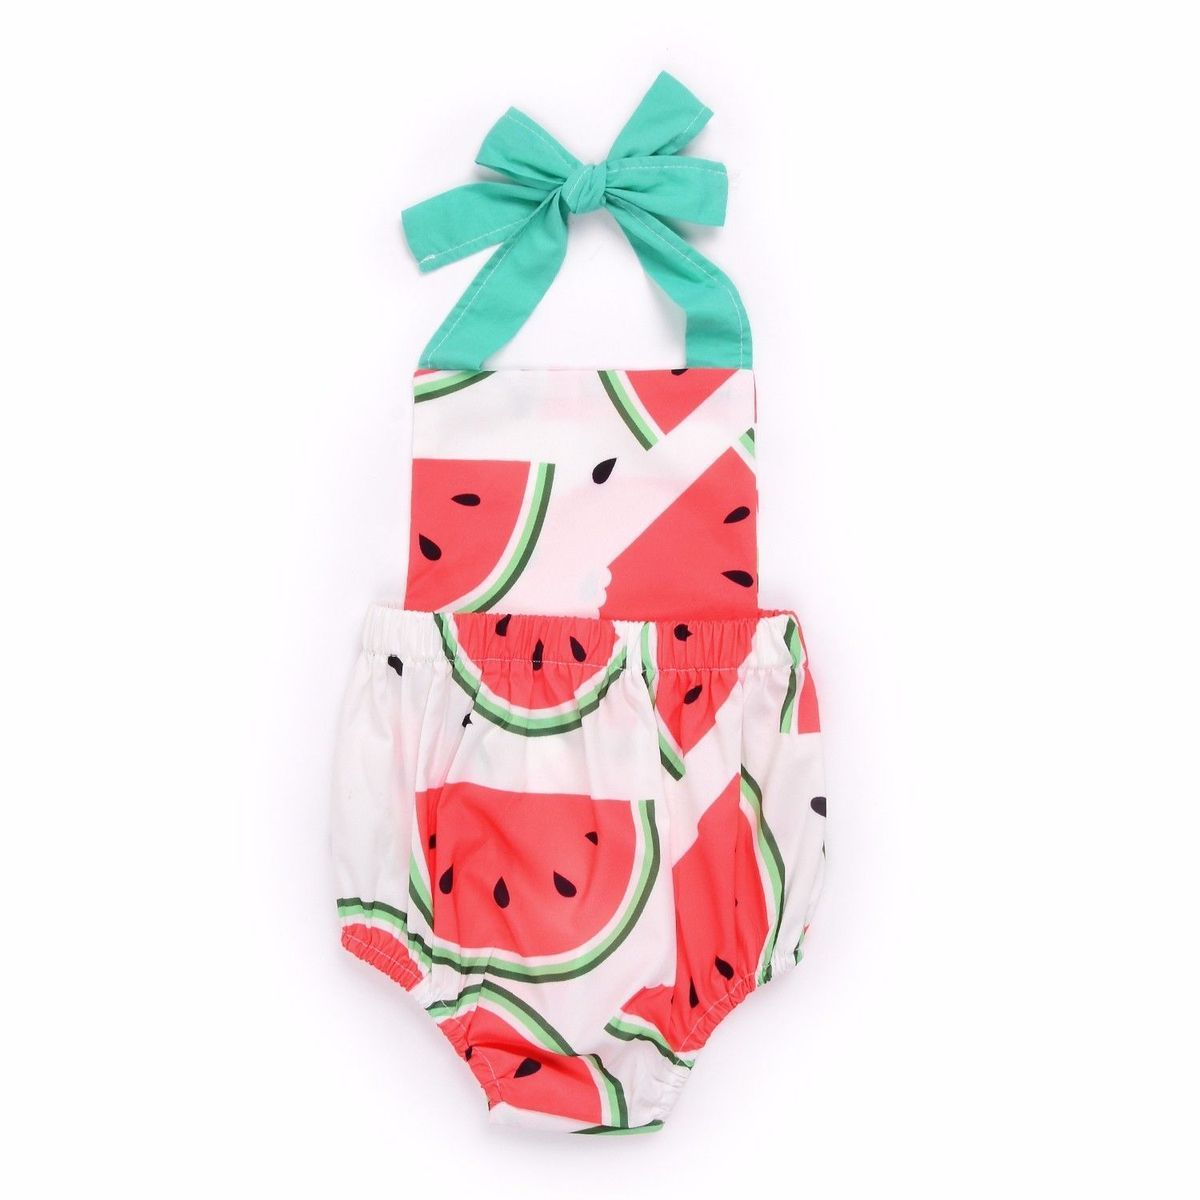 4e605121f4fc 0-24M Newborn Baby Girls Summer Clothes Watermelon Romper Backless Jumpsuit  Outfit Sunsuit Clothing